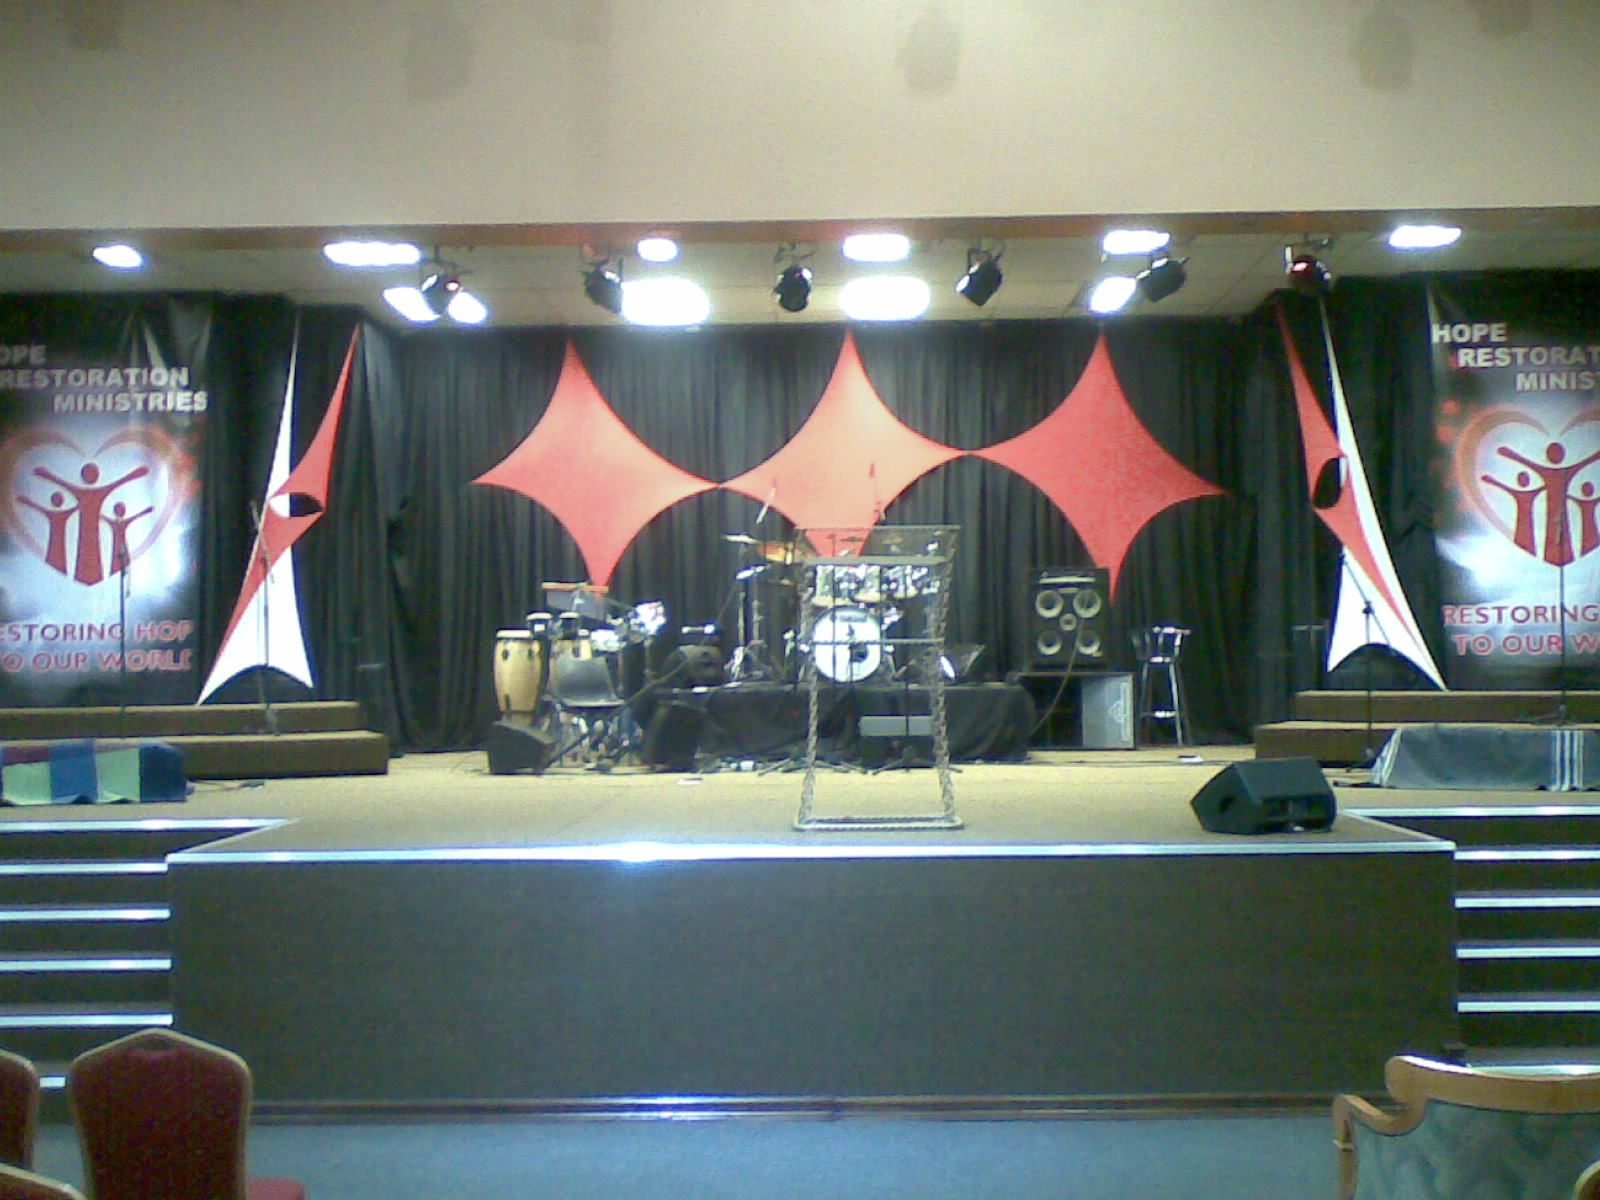 Burlap curtains are you kidding me what a backdrop - Church Stage Decor Draping In Red Stretch Panels On Black Backdrop